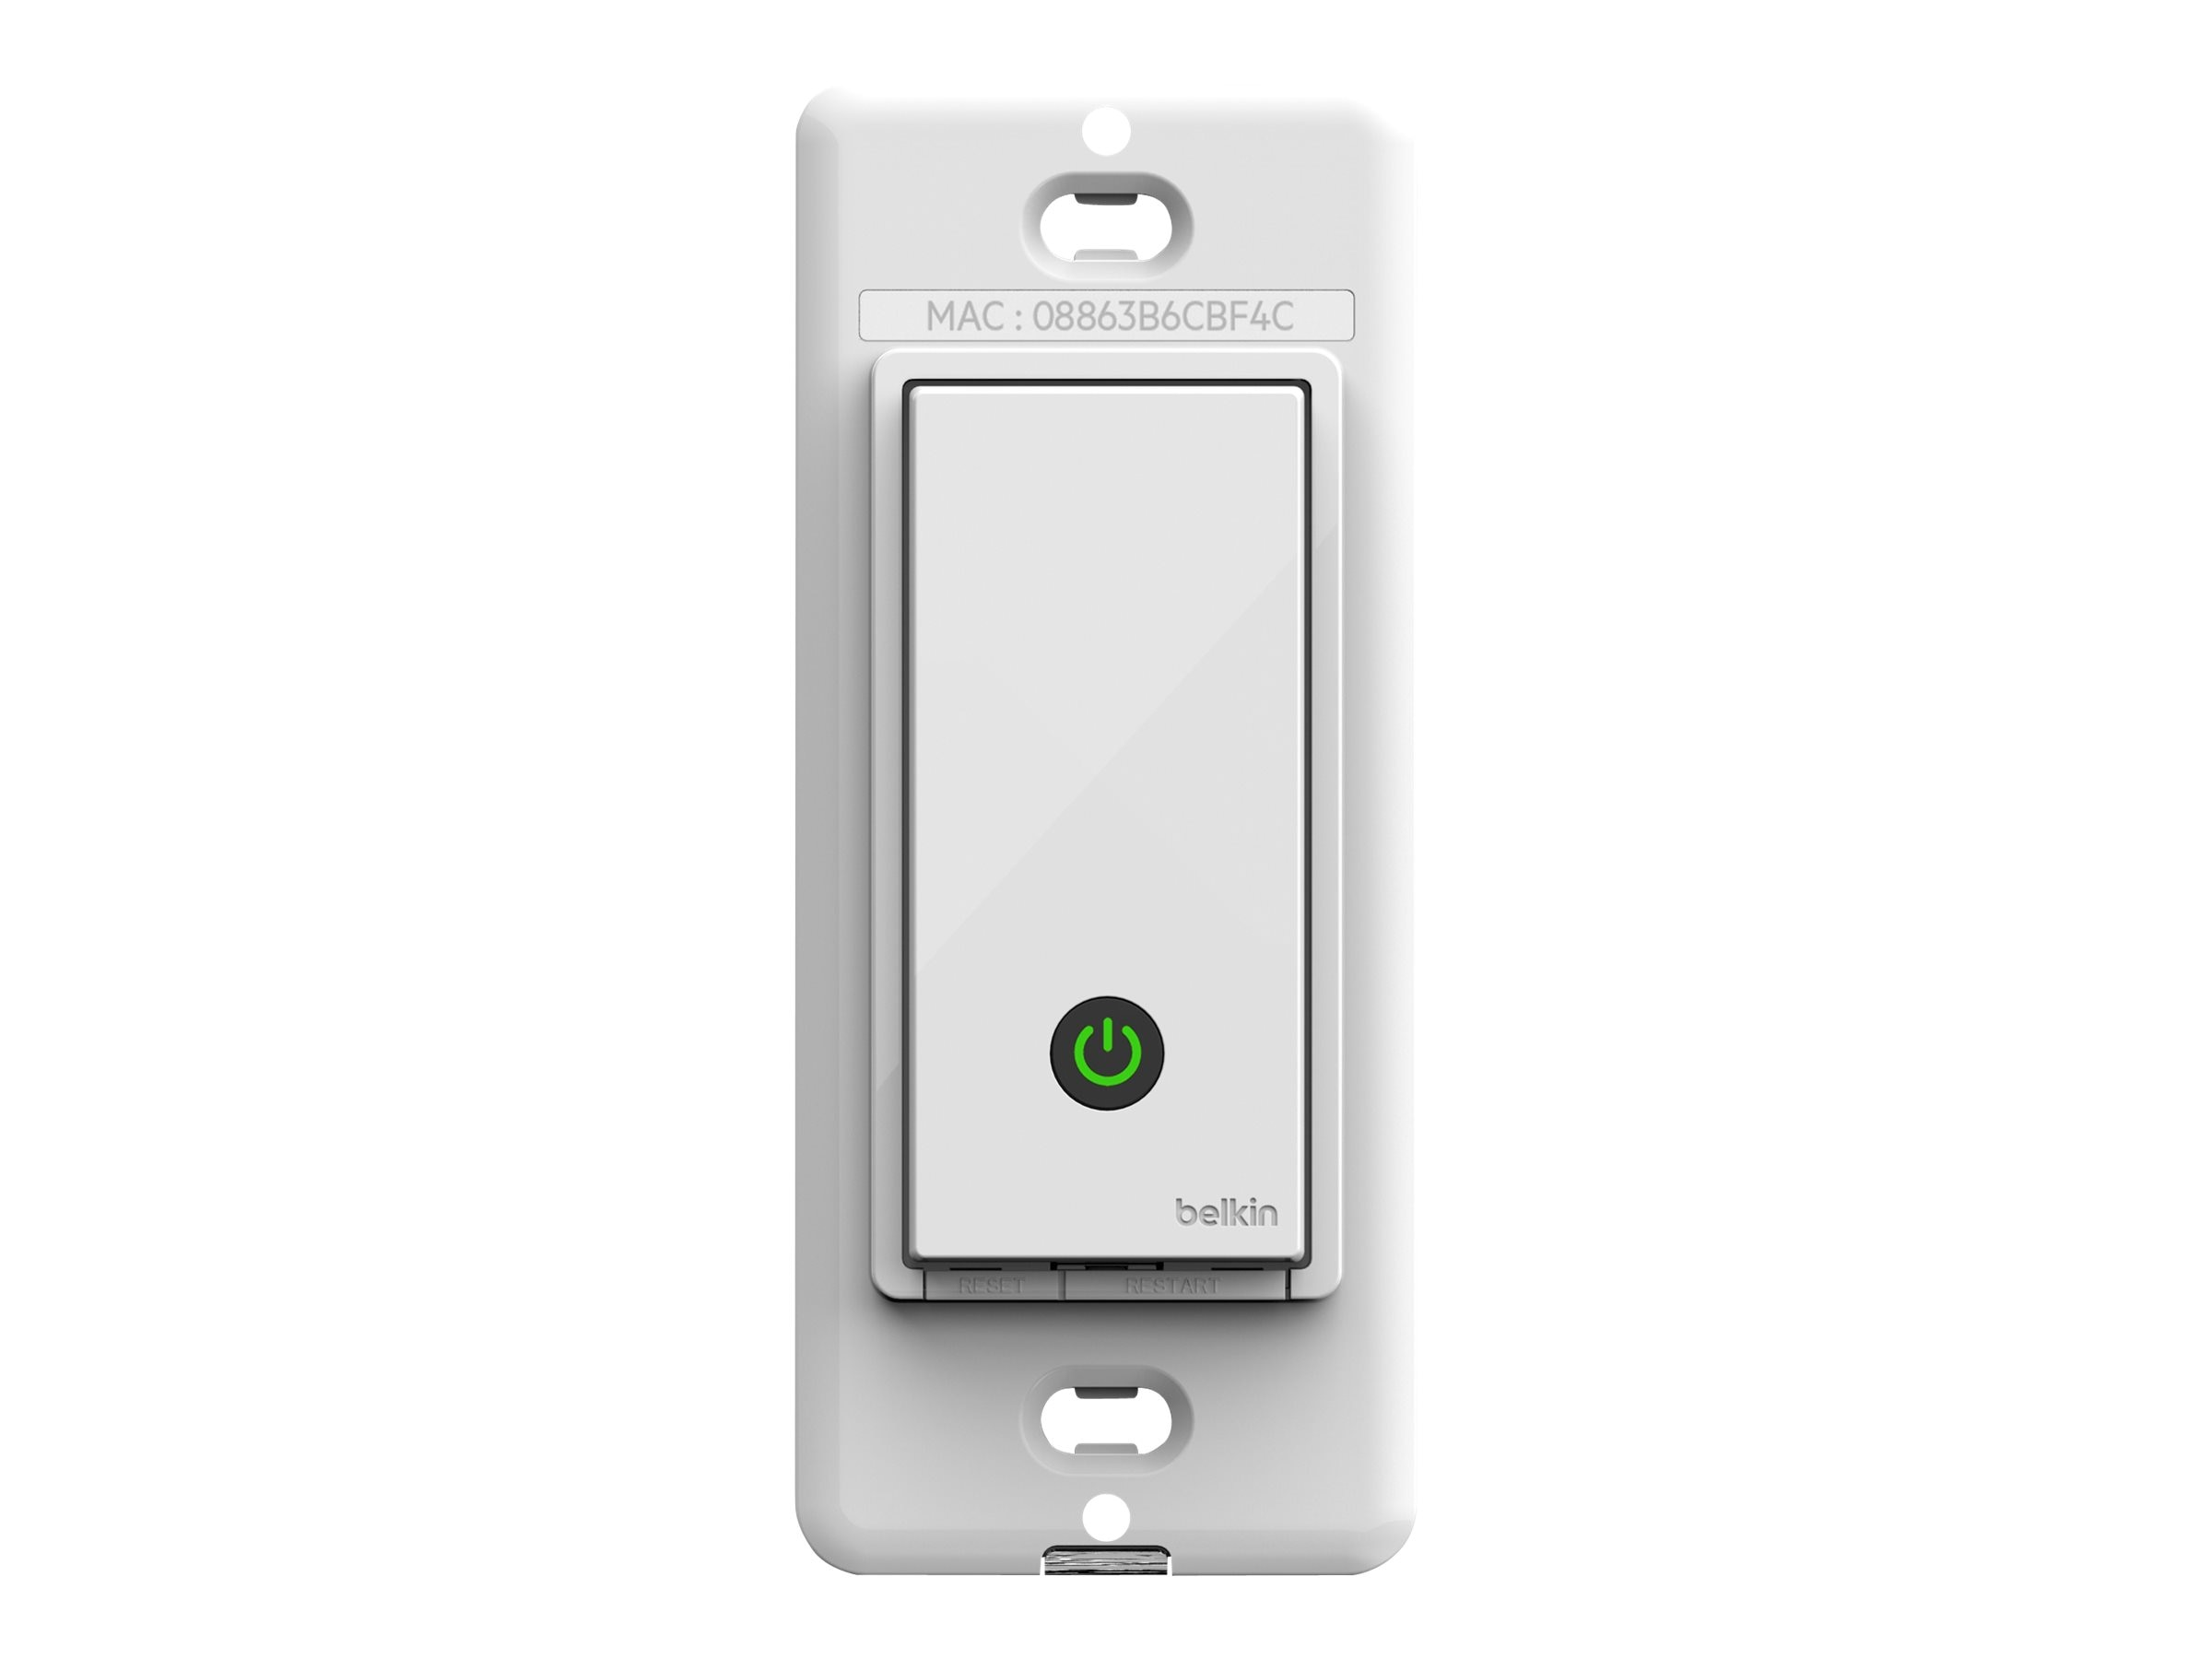 Belkin WeMo Light Switch w  Faceplate, F7C030FC, 16305175, Premise Wiring Equipment